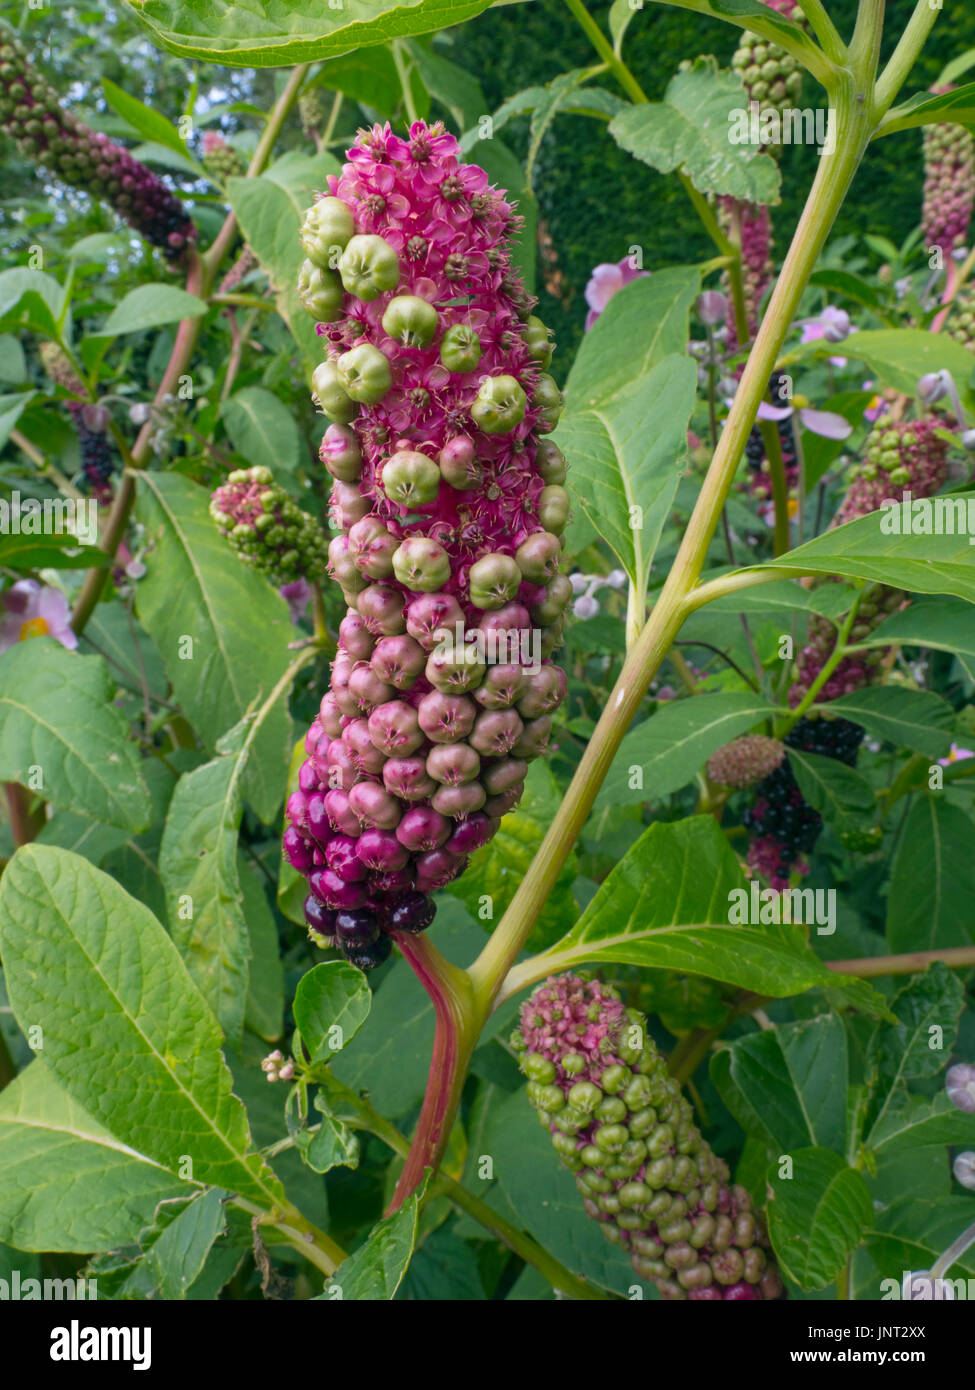 American Pokeweed Plant Phytolacca americana fruiting bodies - Stock Image